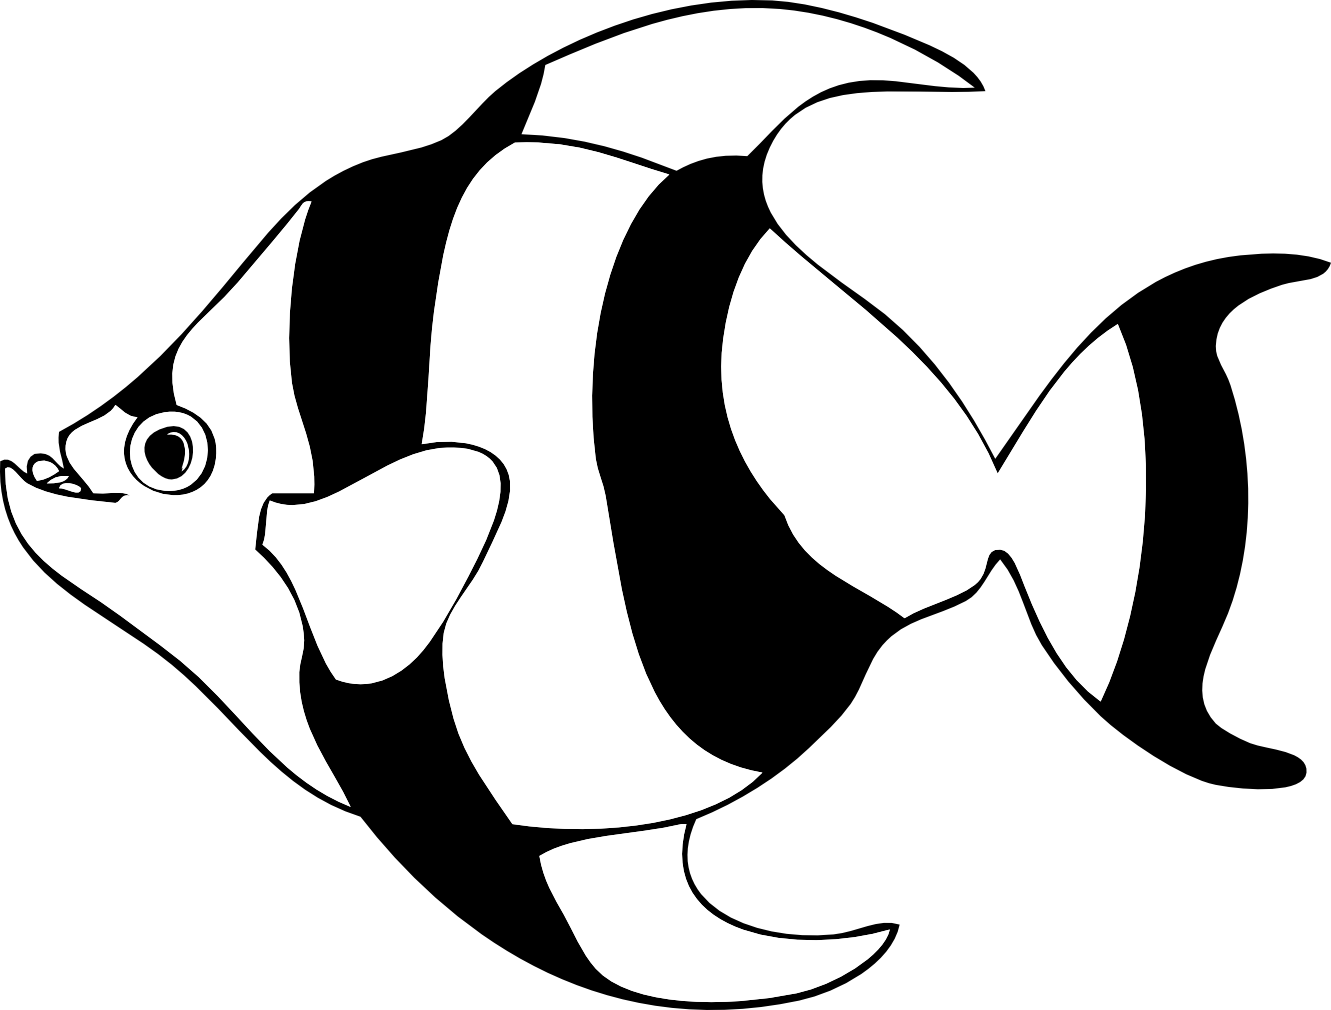 Ocean fish clipart black and white graphic library download School Black And White Clipart | Free download best School Black And ... graphic library download